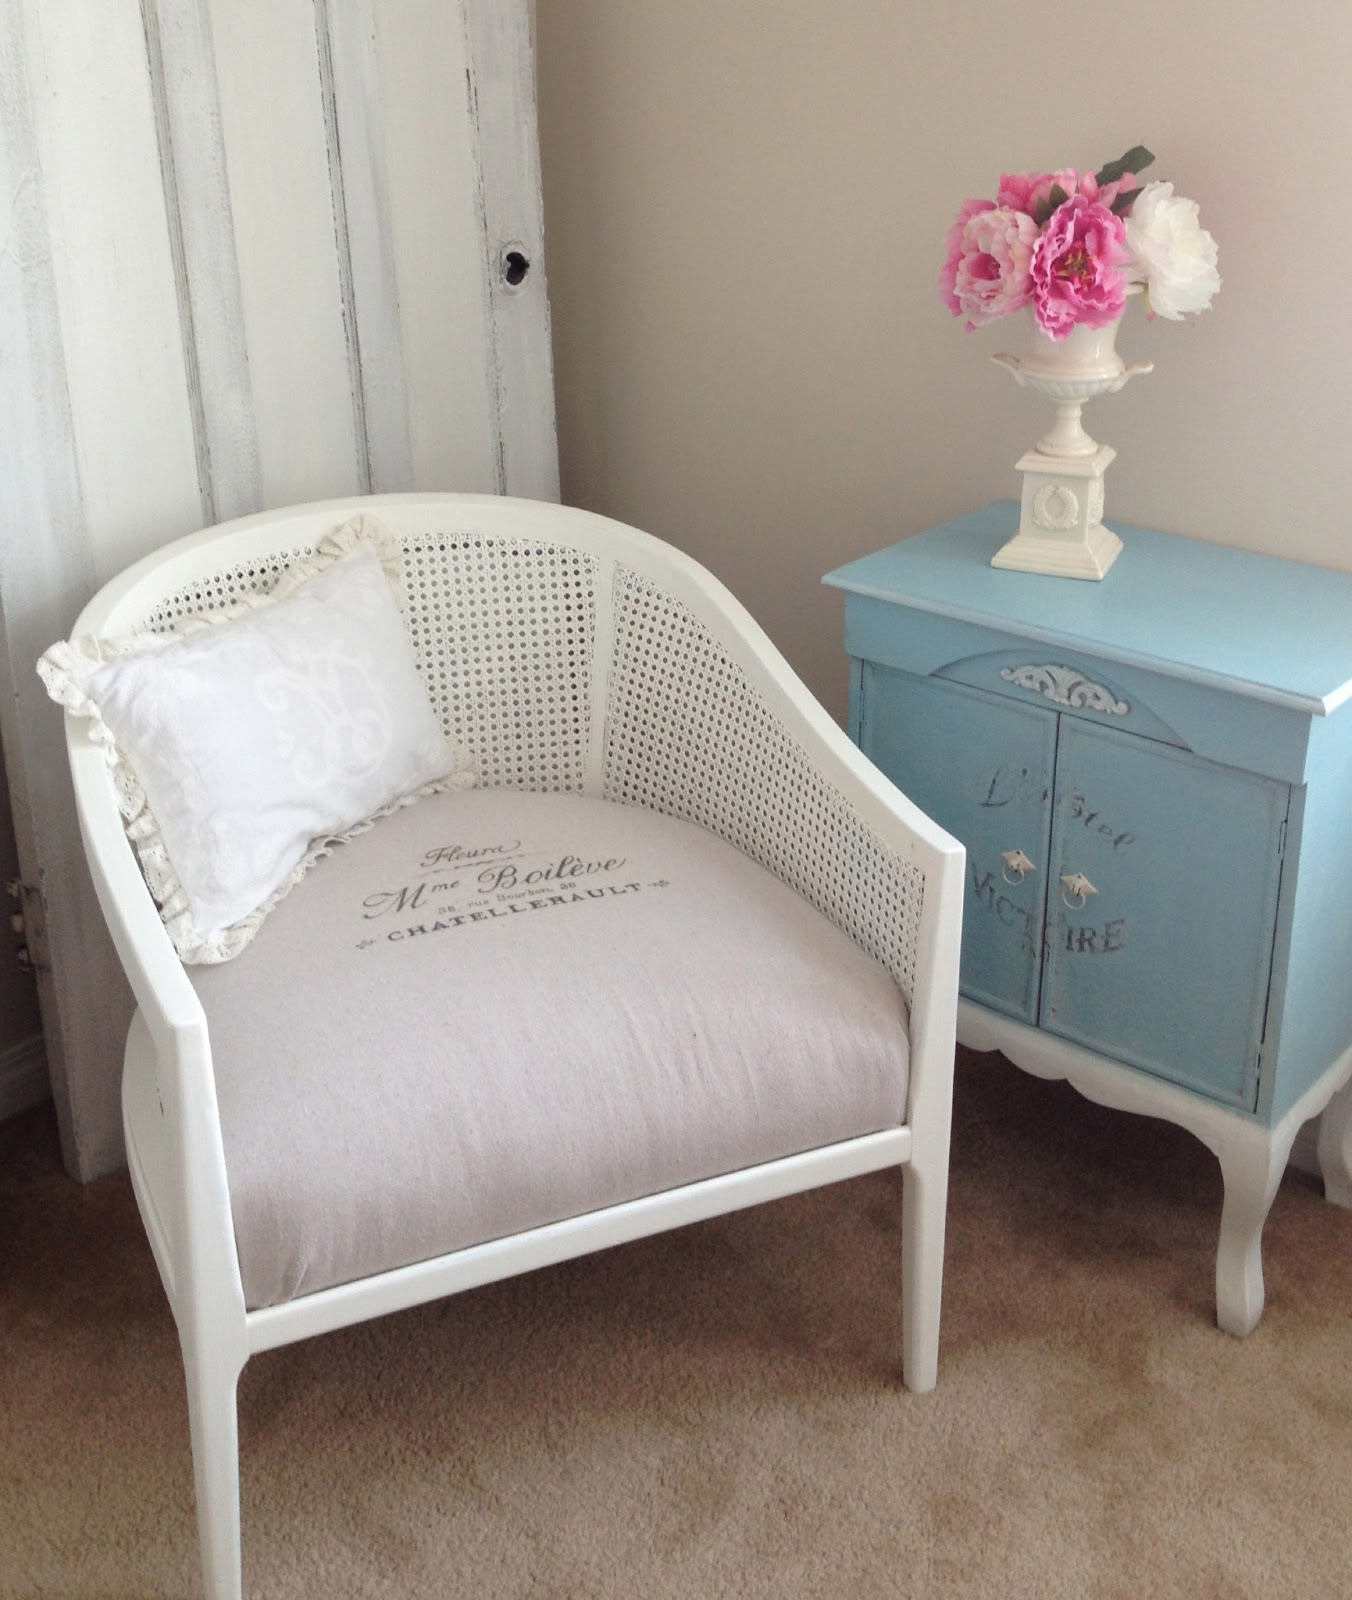 how do you cane a chair small white for bathroom ramshackle romance designs by deborah n smith barrel